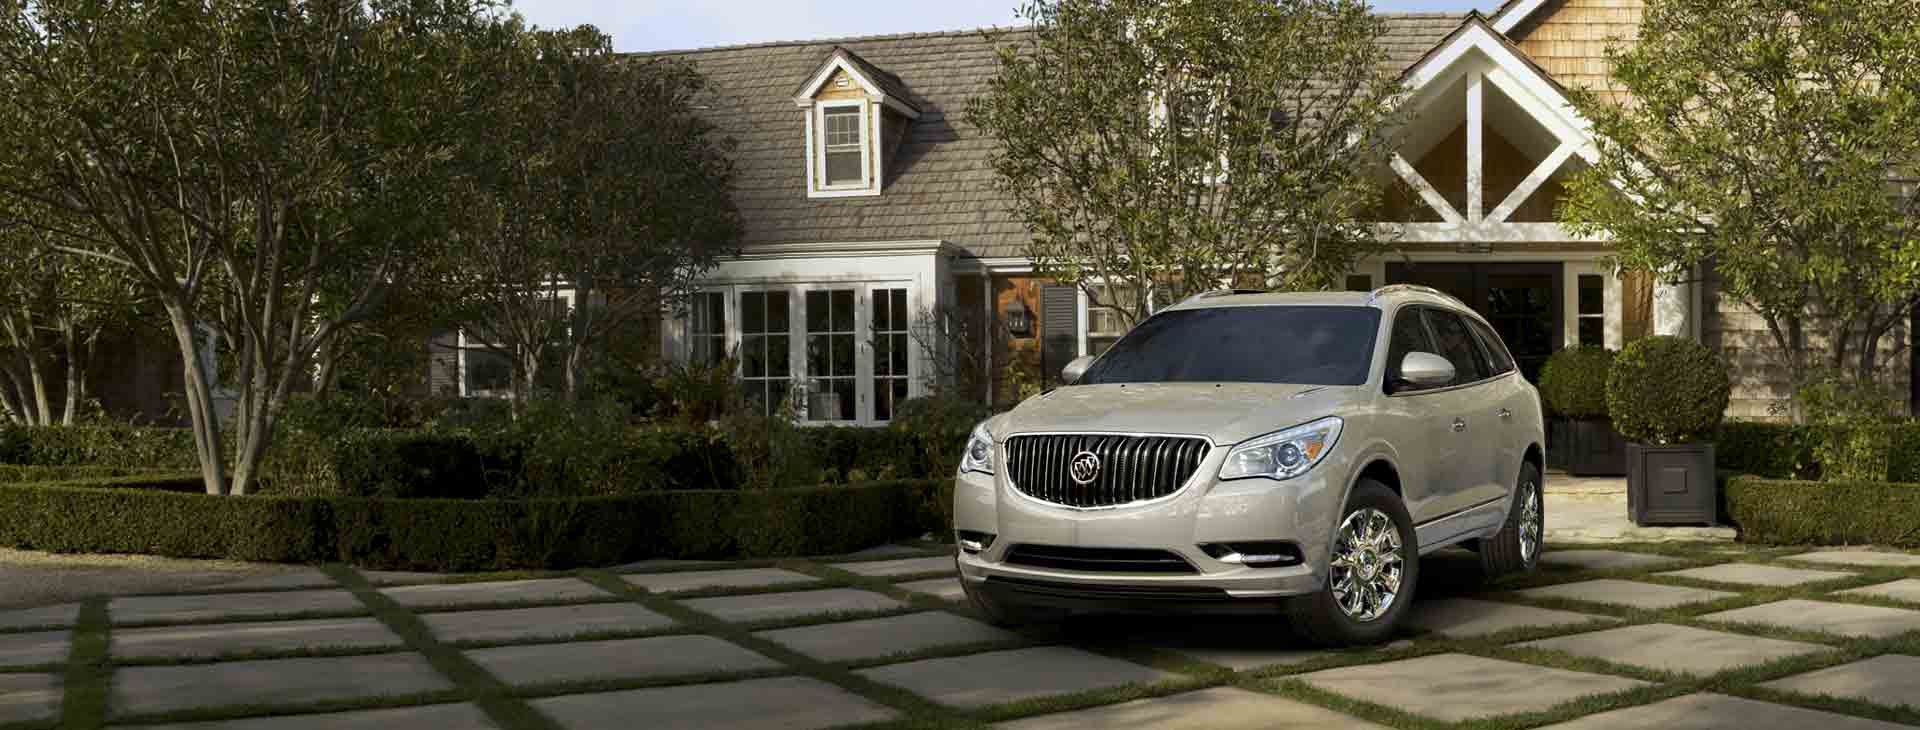 gmc offers arlignton heights lease in sullivan il buick specials enclave